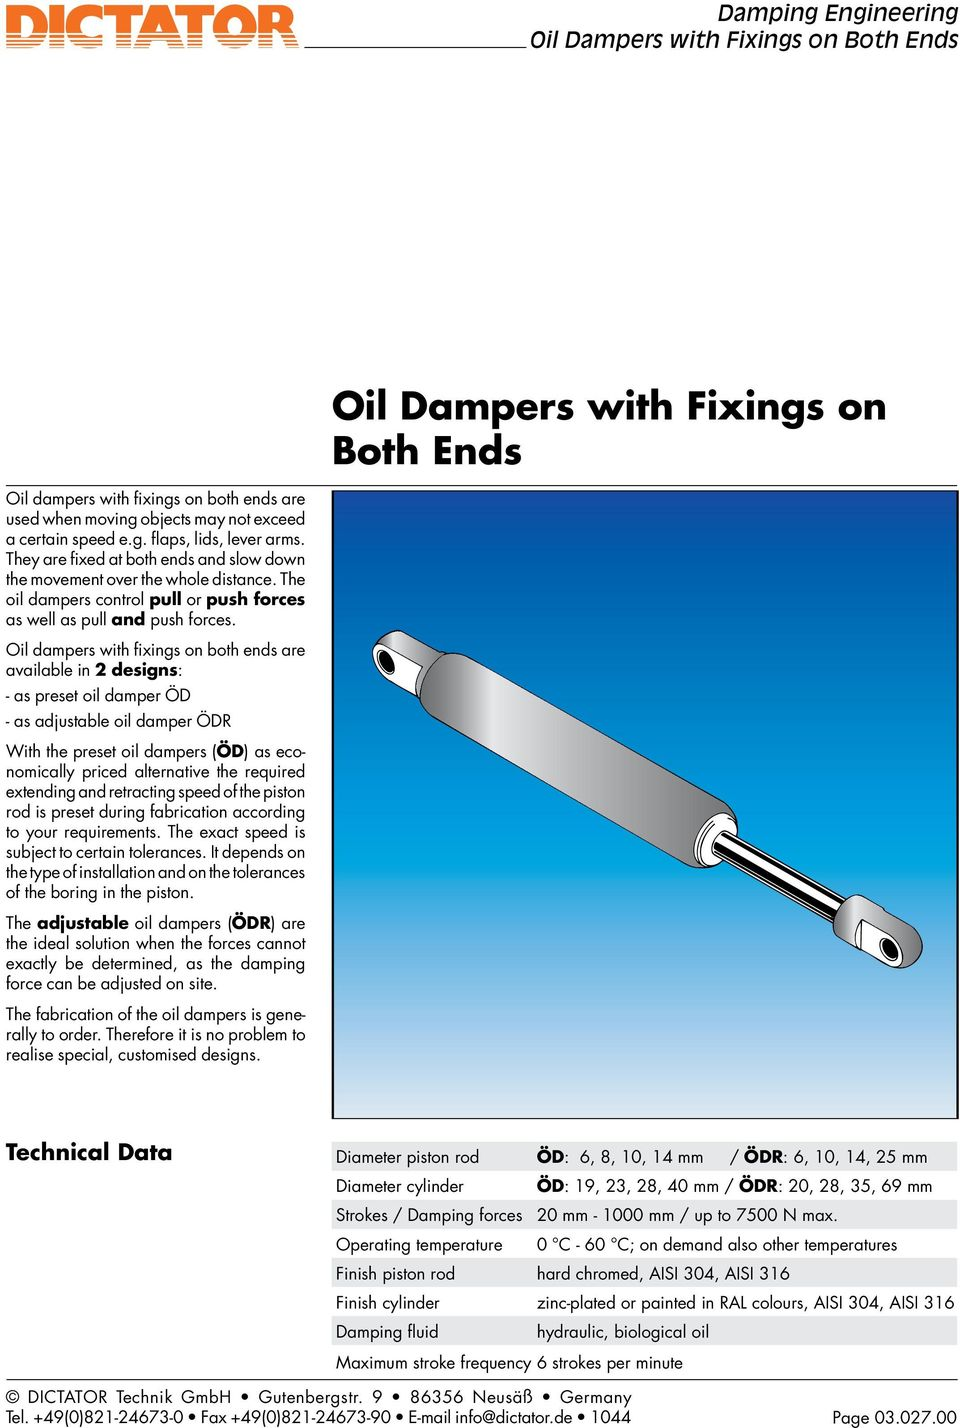 Oil dampers with fixings on both ends are available in 2 designs: - as preset oil damper Ö - as adjustable oil damper ÖR With the preset oil dampers (Ö) as economically priced alternative the